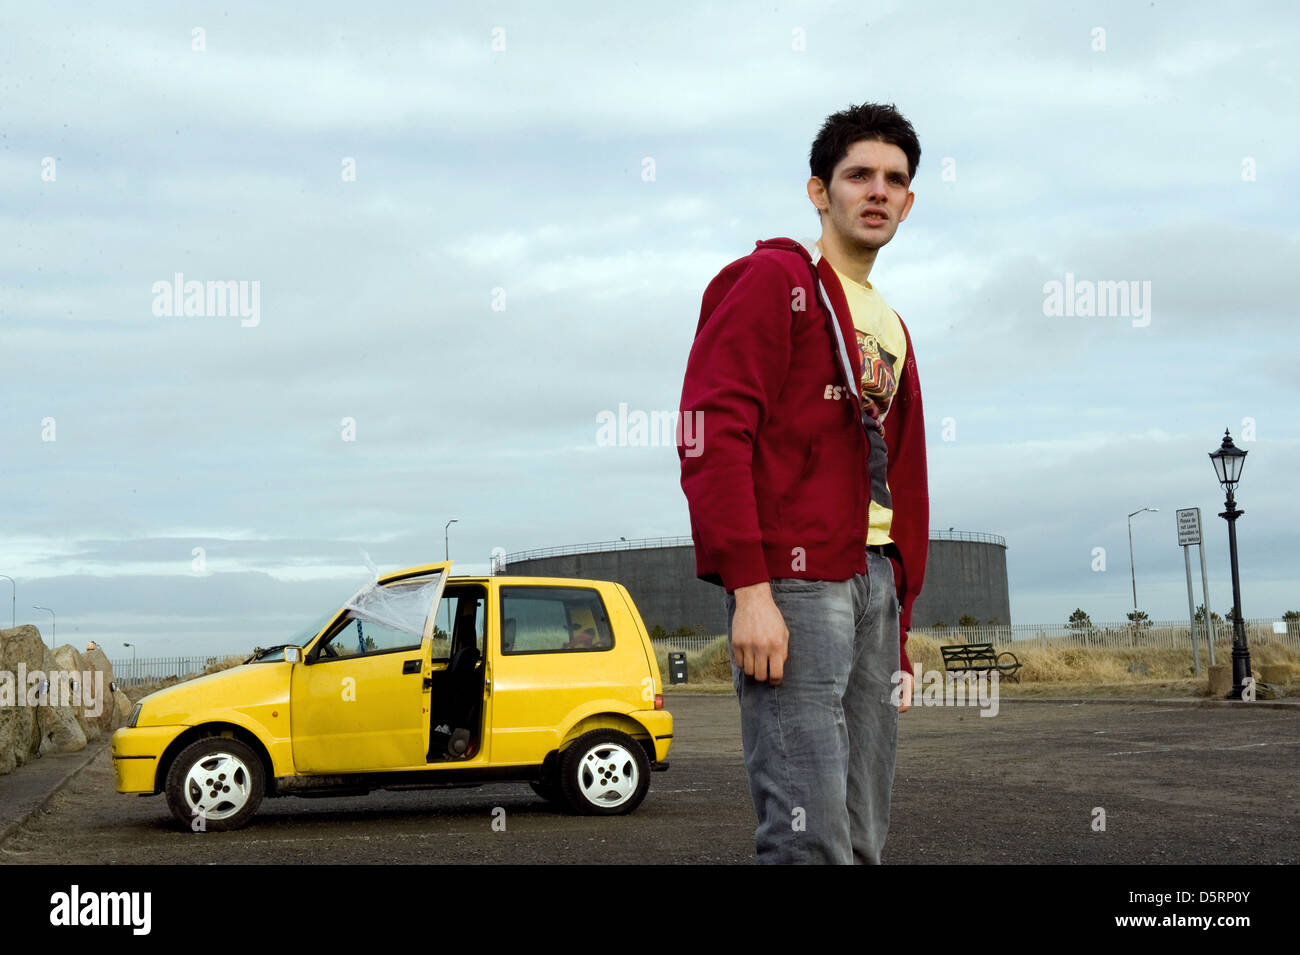 COLIN MORGAN PARKED (2010) - Stock Image